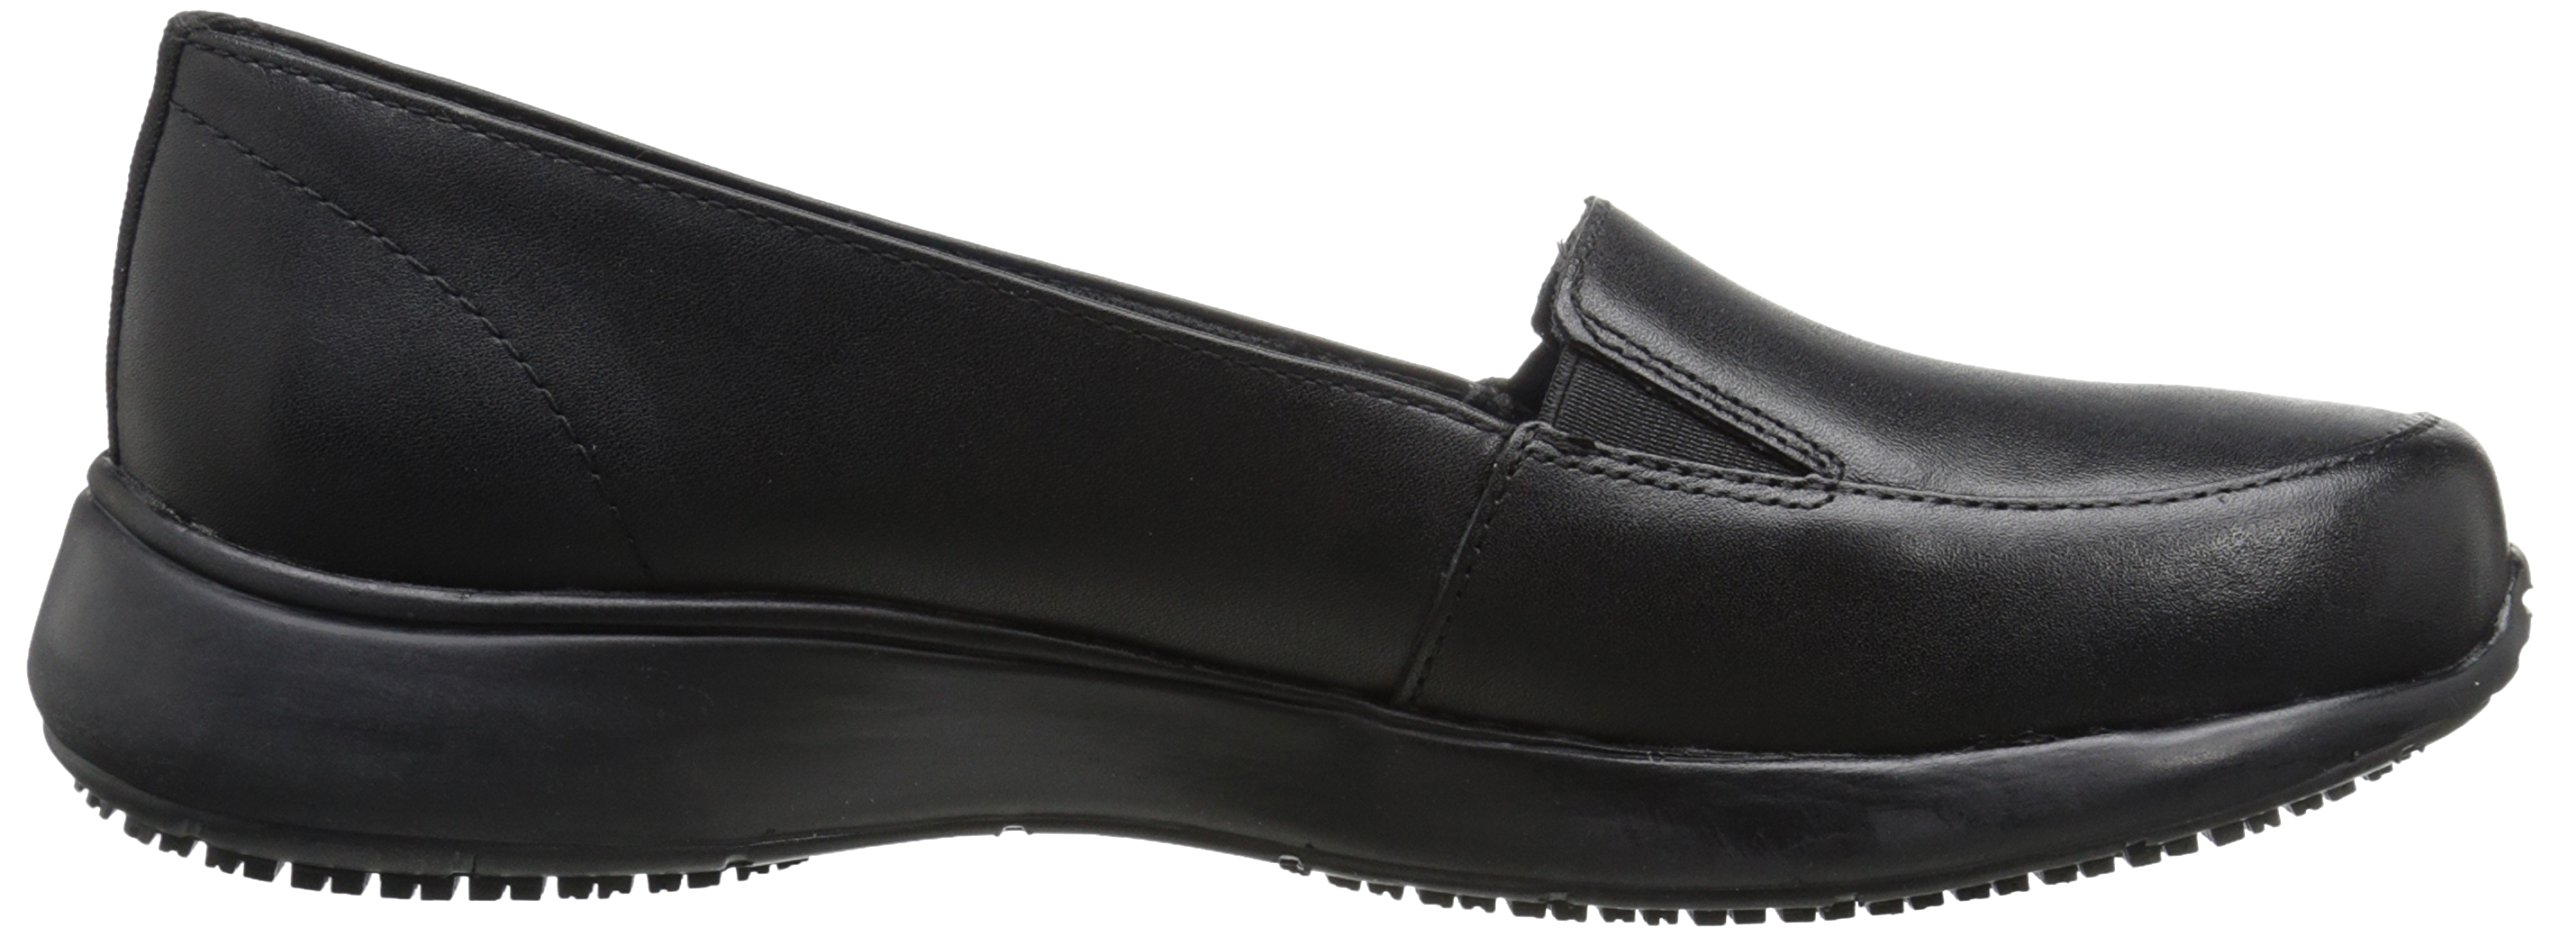 Dr. Scholl's Women's Lauri Slip On, Black, 8 M US by Dr. Scholl's Shoes (Image #7)